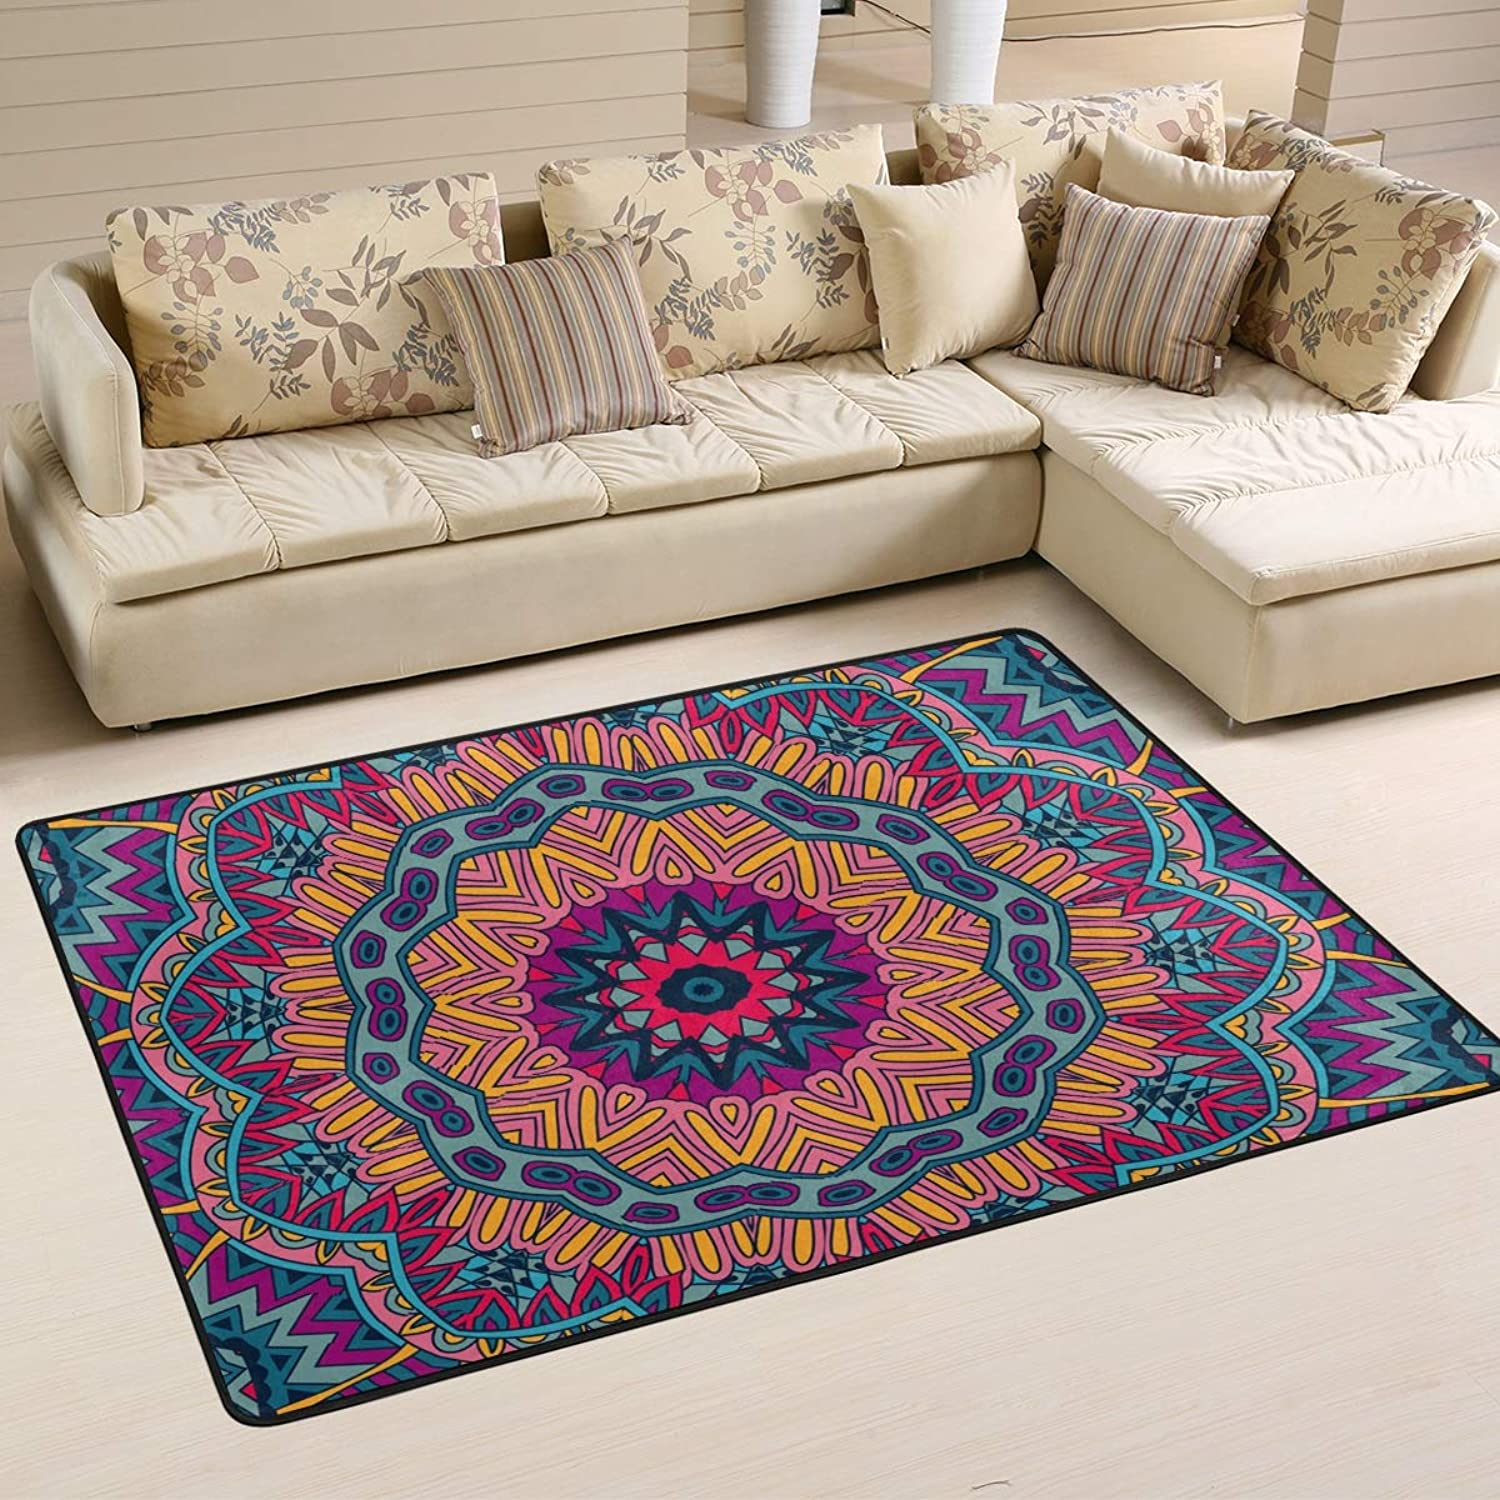 Area Rugs Doormats Flower Pattern colorful Mandala Soft Carpet Mat 6'x4' (72x48 Inches) for Living Dining Dorm Room Bedroom Home Decorative